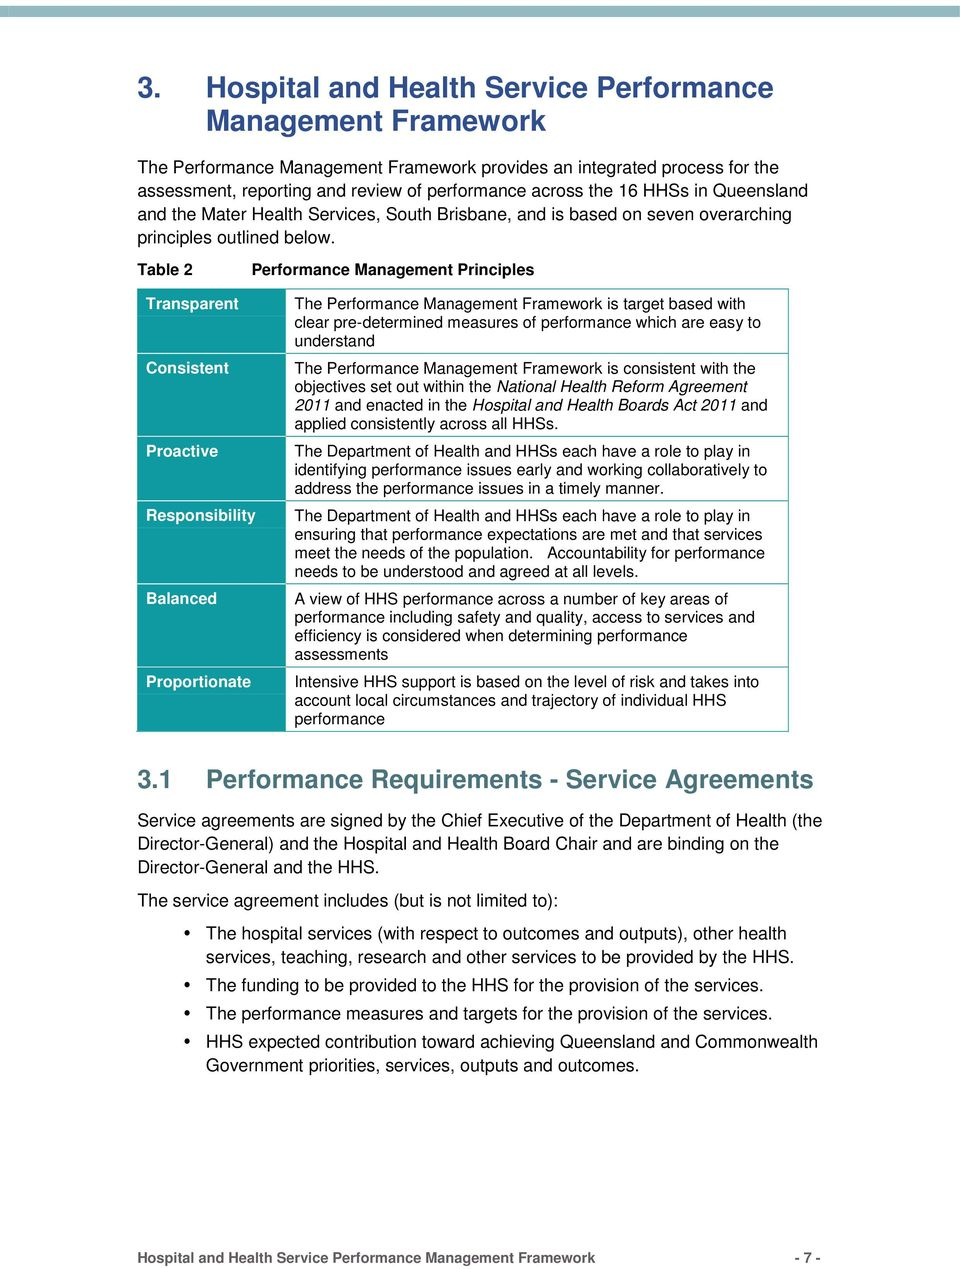 Table 2 Performance Management Principles Transparent Consistent Proactive Responsibility Balanced Proportionate The Performance Management Framework is target based with clear pre-determined